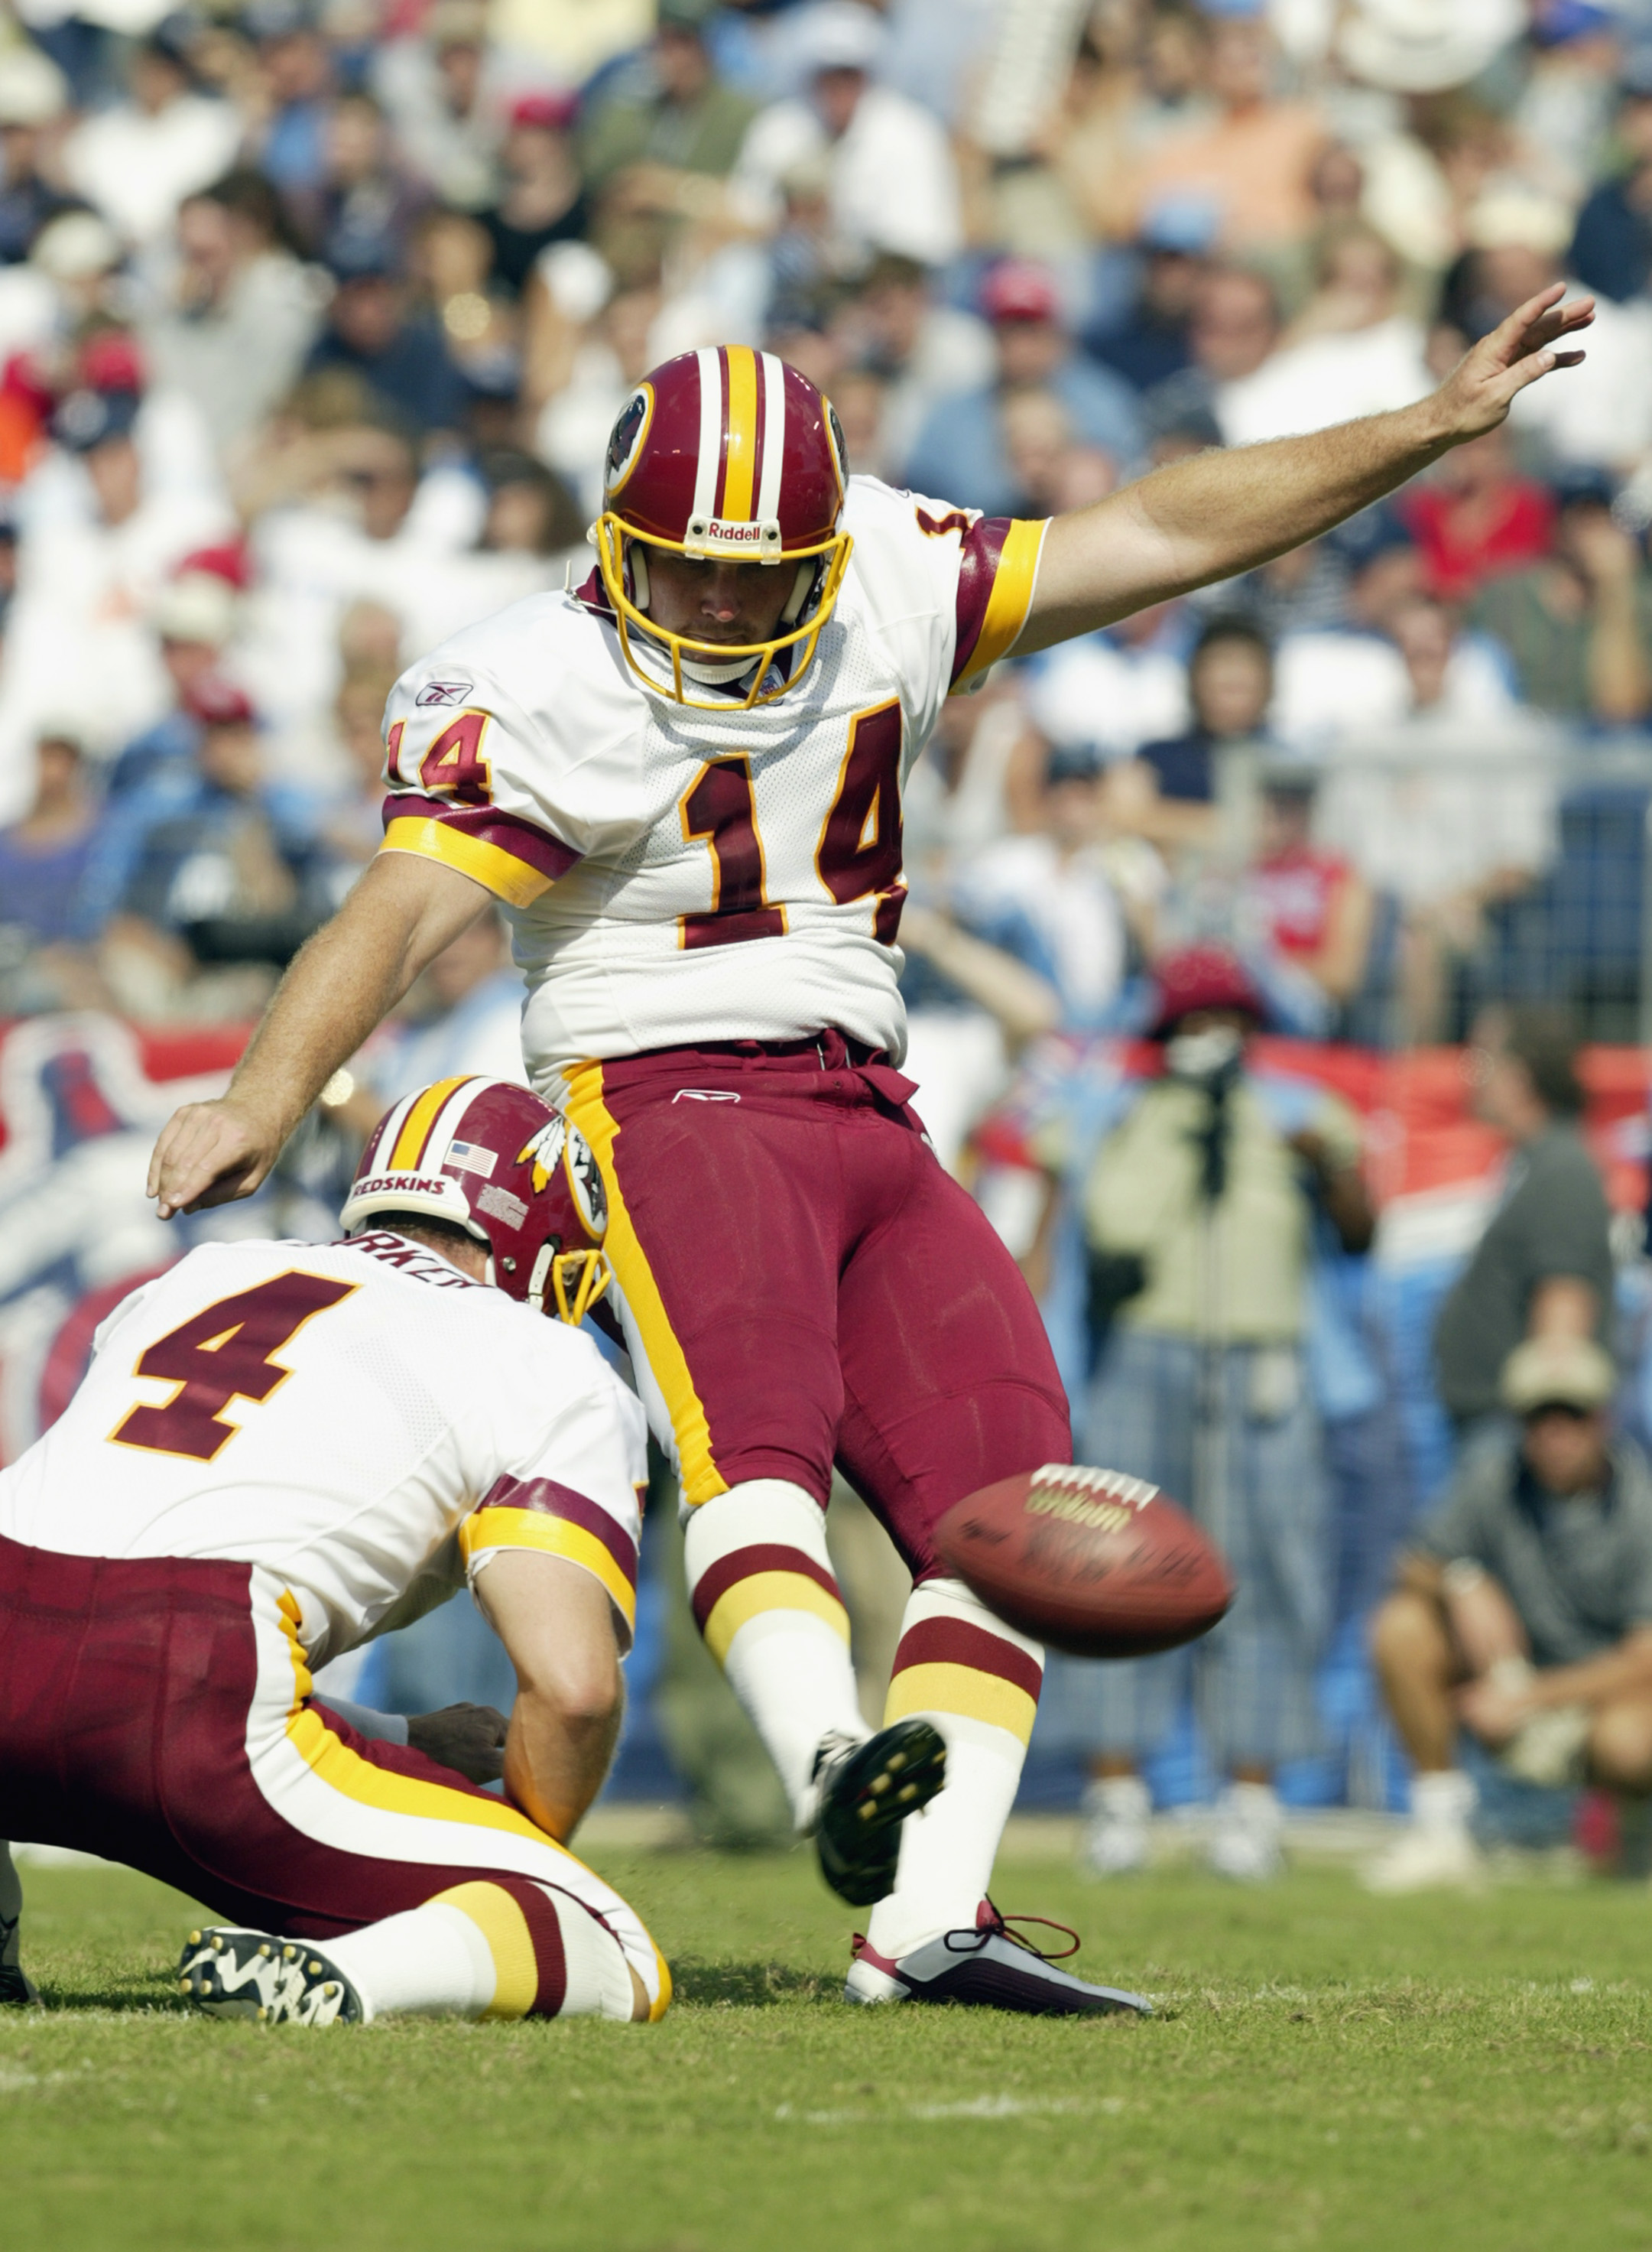 ST. LOUIS - OCTOBER 6:  Kicker James Tuthill #14 of the Washington Redskins scores a field goal as punter Bryan Barker #4 holds the ball during their NFL game on October 6, 2002 at The Coliseum in Nashville, Tennessee.  The Redskins won 31-14.  (Photo by